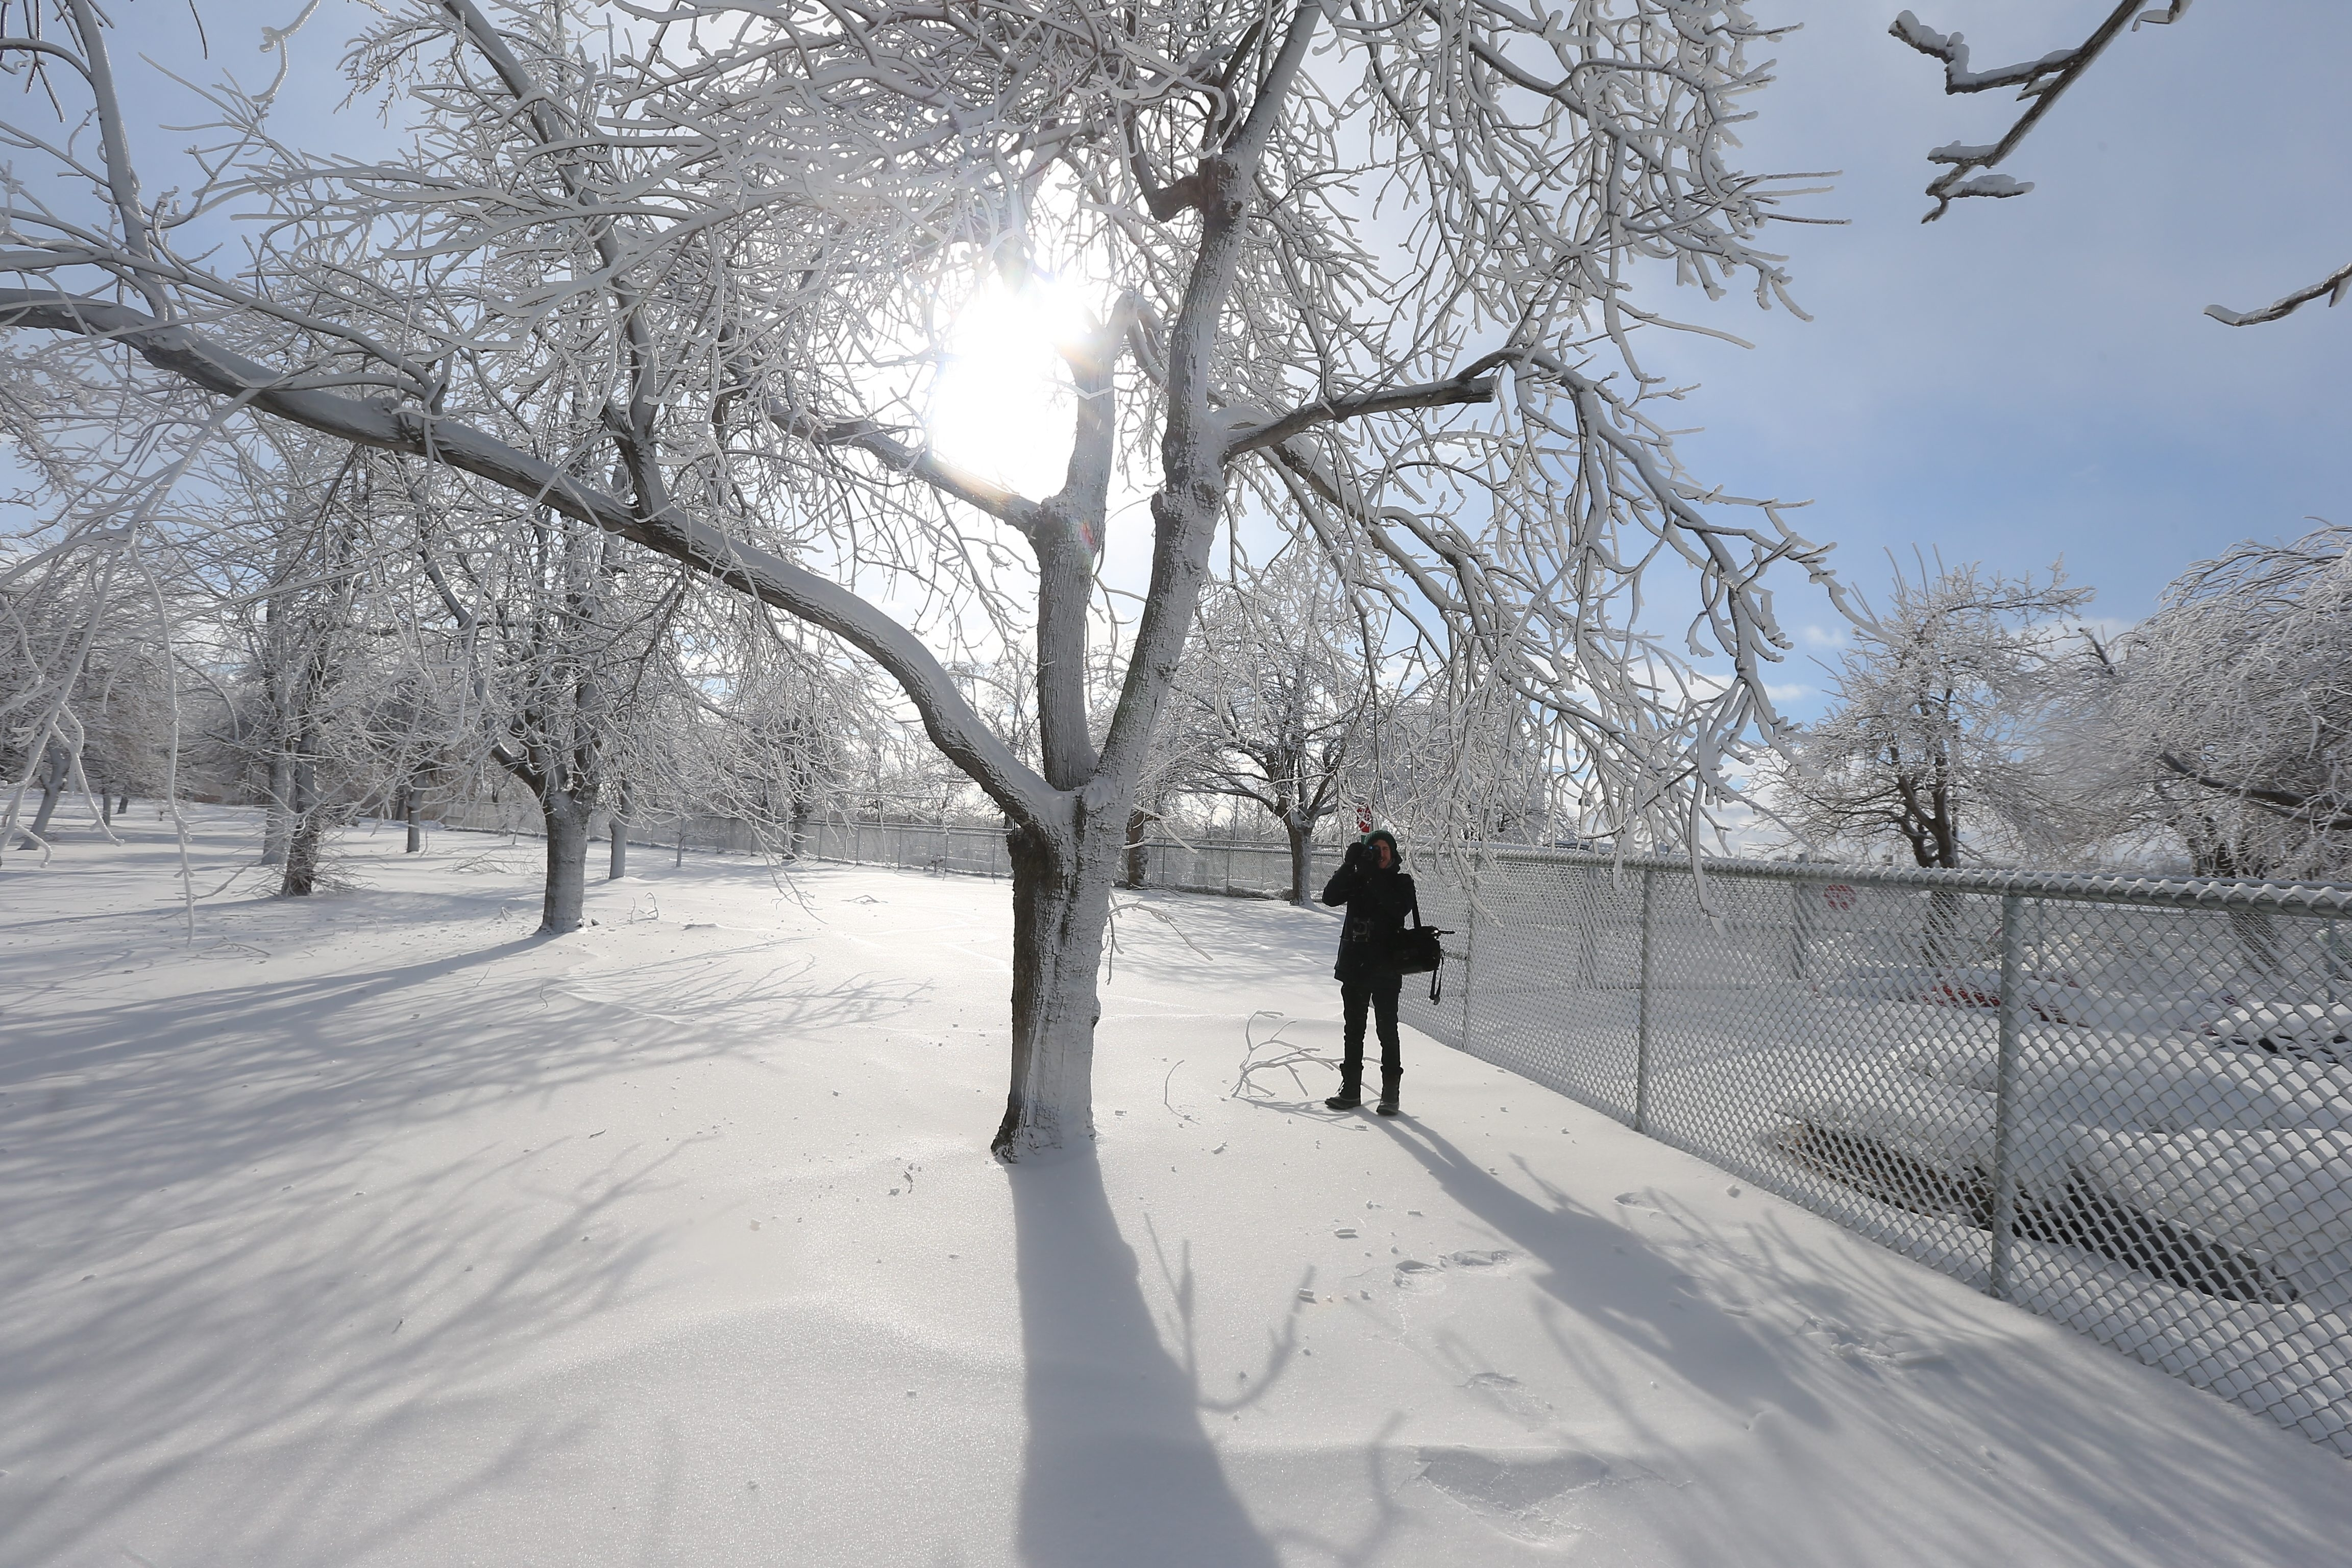 Mario Wezel, a photographer from Hanover, Germany, takes photos on Tuesday at Niagara Falls State Park, where mist from the falls turns trees into ice sculptures. The temperature at the time was 14 degrees.